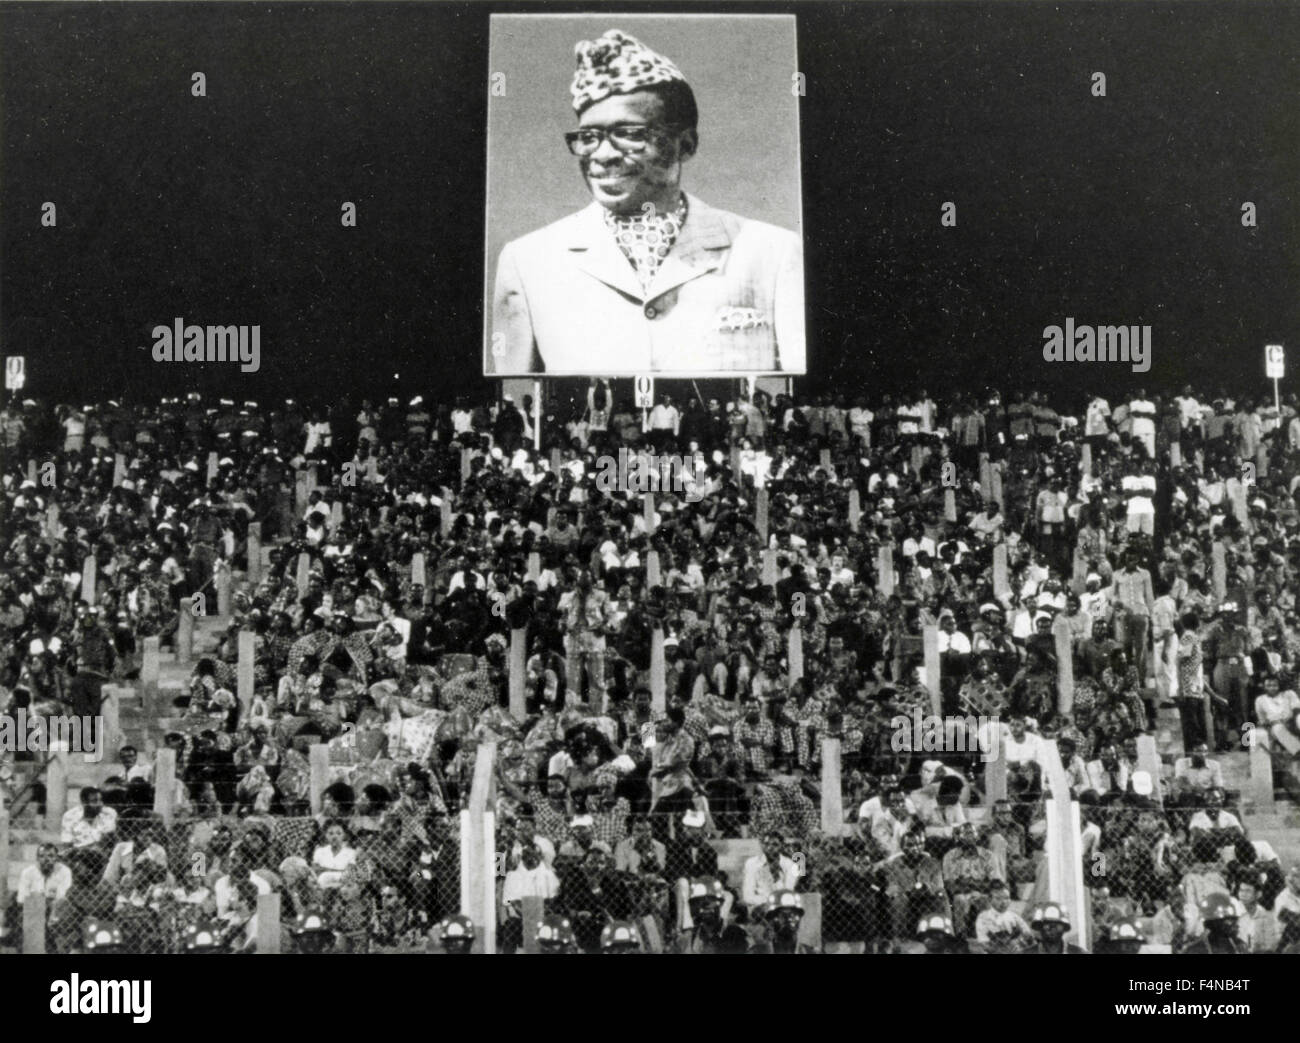 Blow-up of Mobutu, President, Zaire - Stock Image